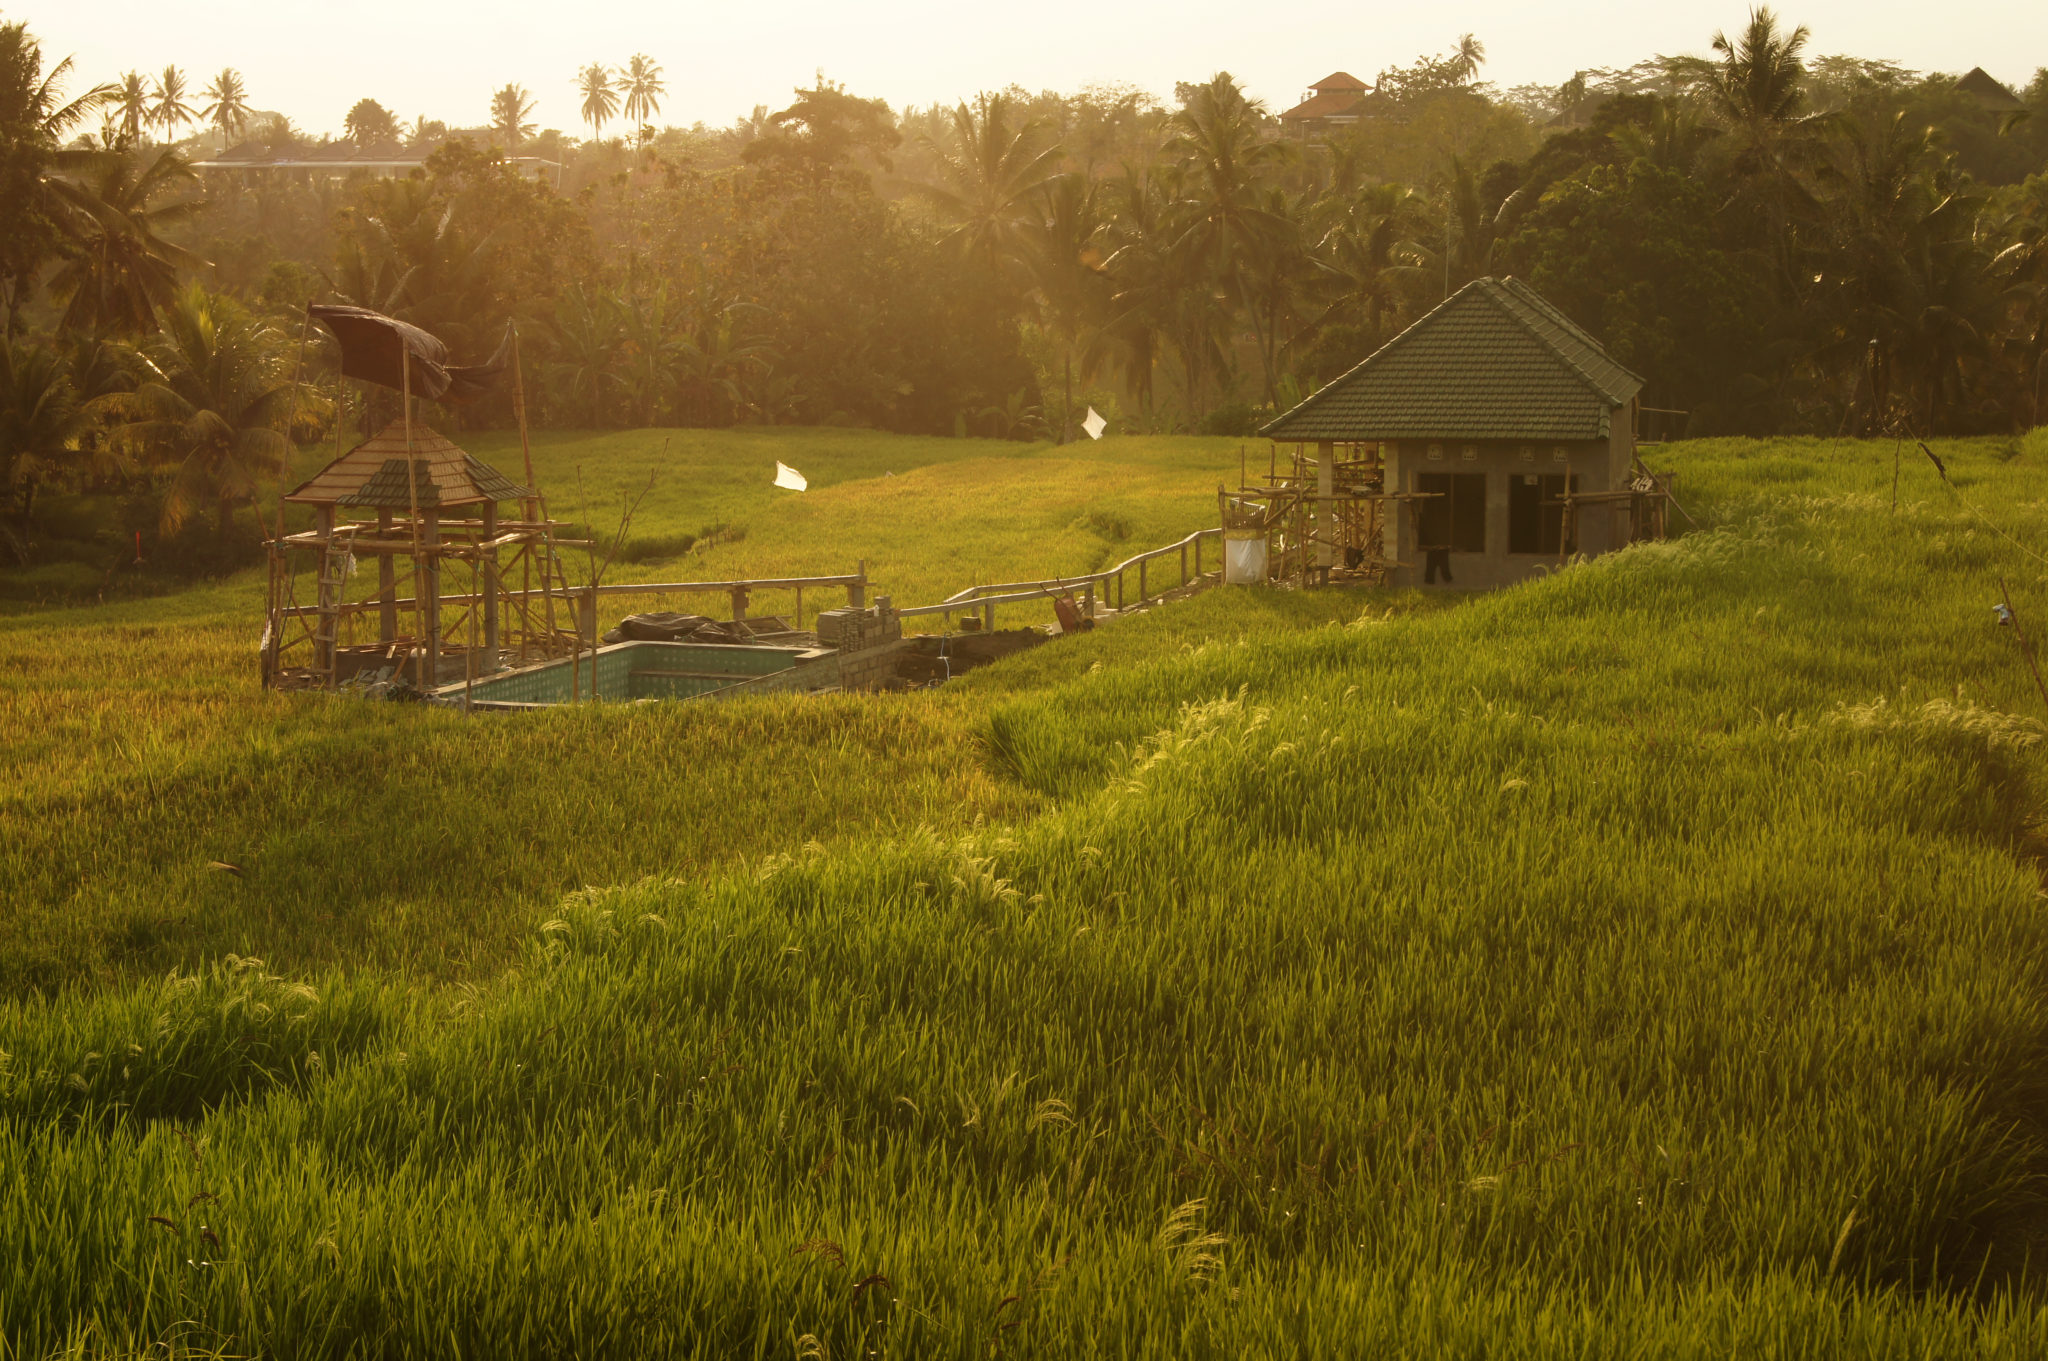 Indonesia-travel-guide-Rice-paddies-Bali